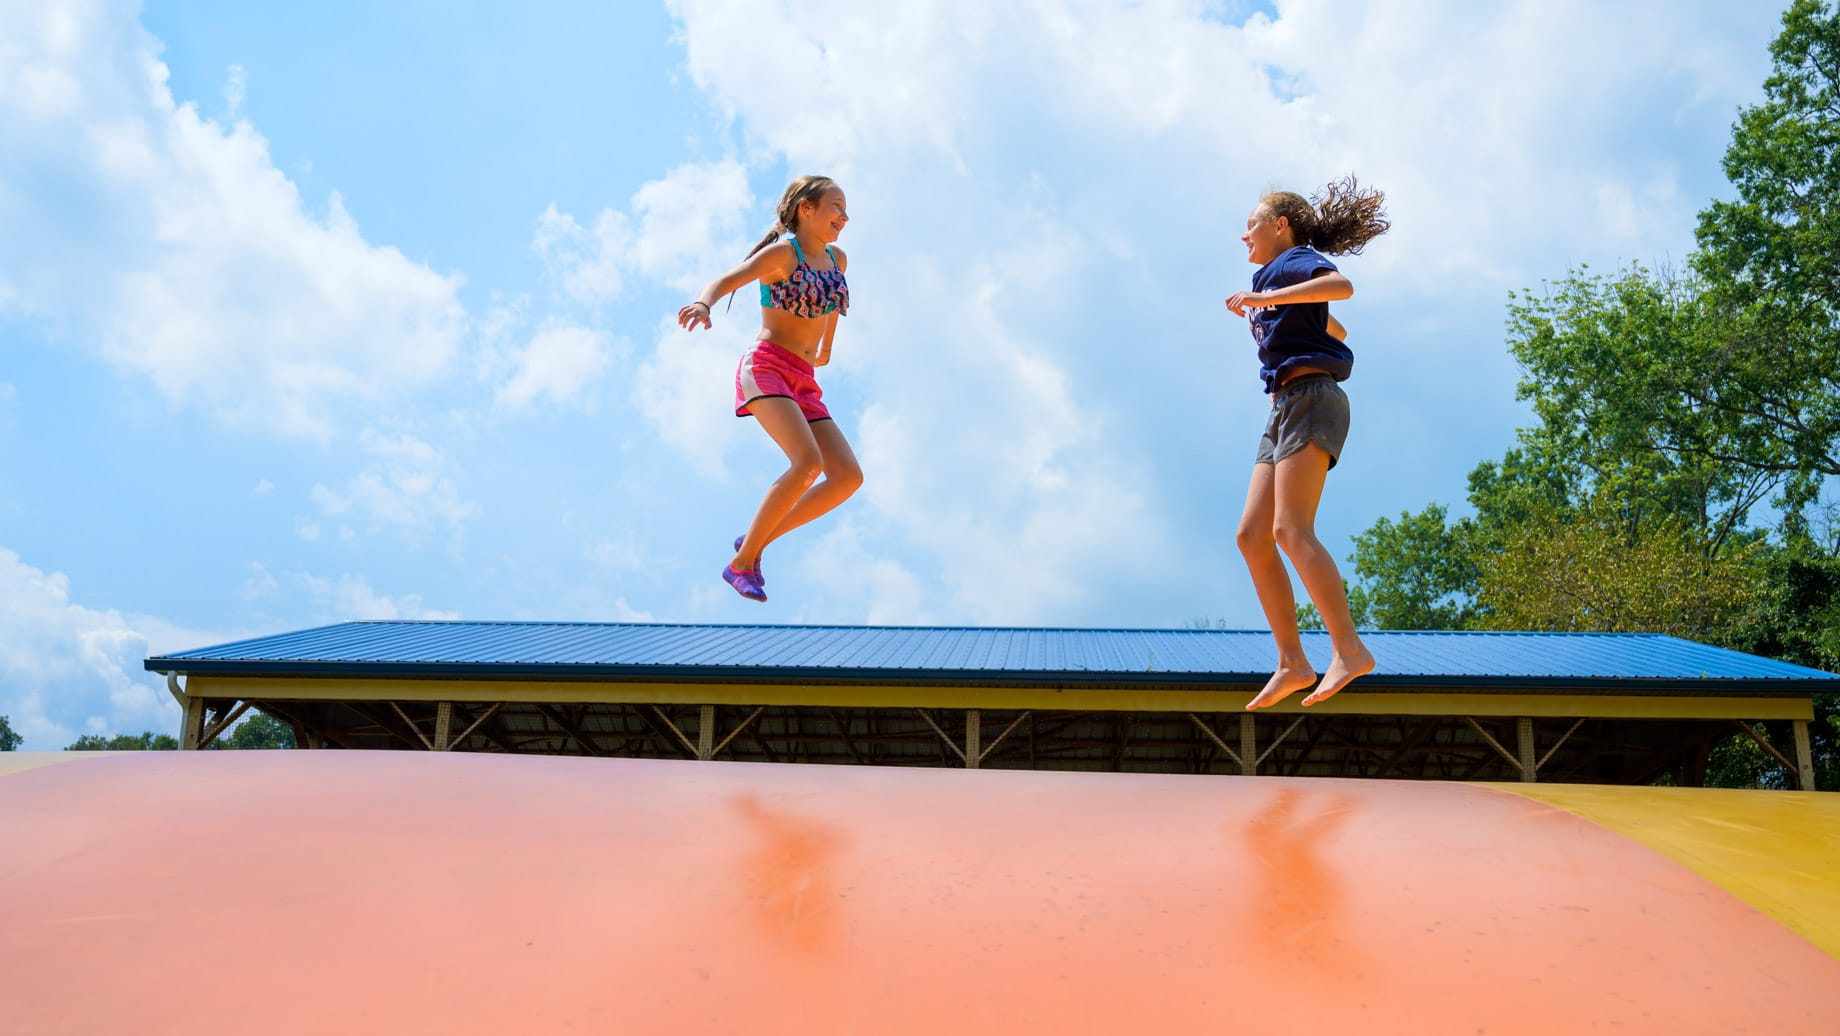 Girls on jumping pillow